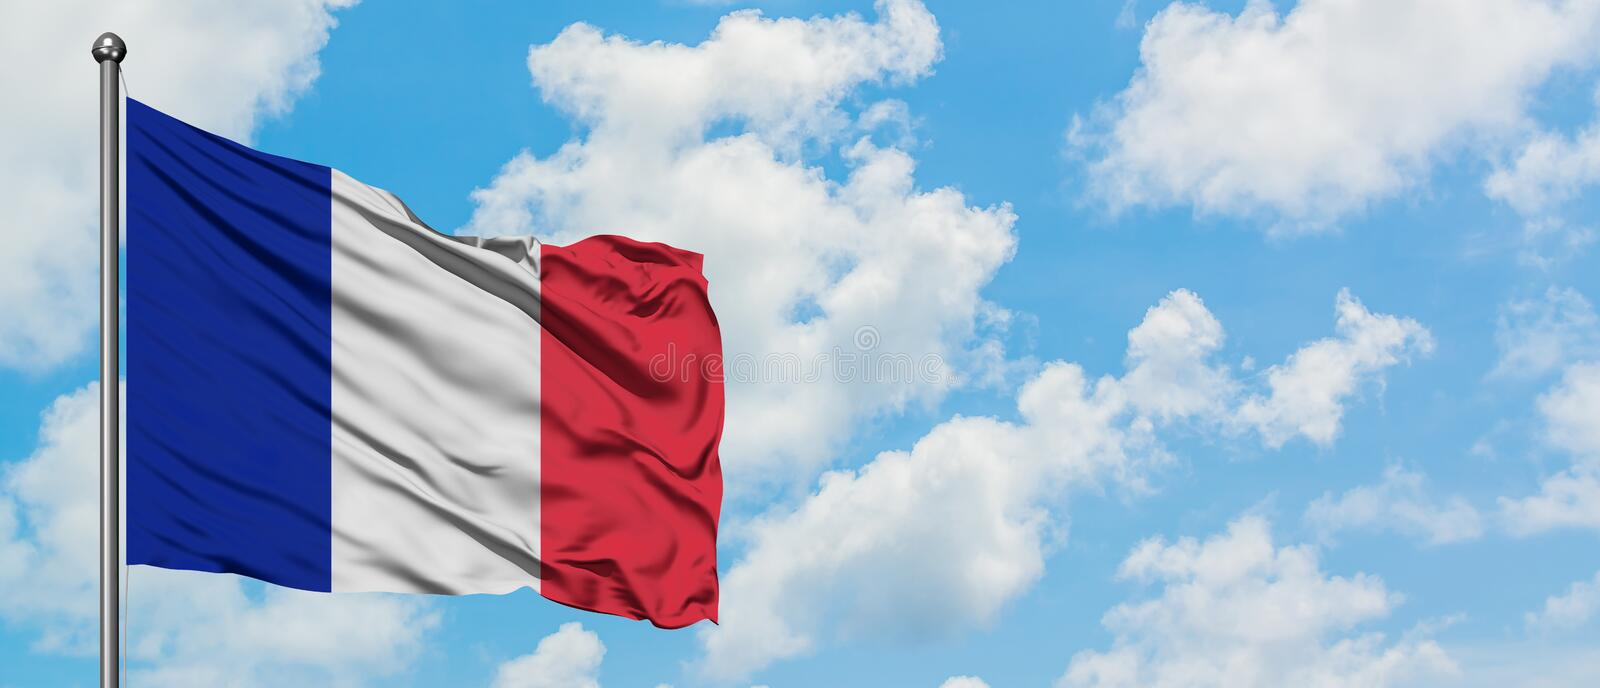 Reunion flag waving in the wind against white cloudy blue sky. Diplomacy concept, international relations.  royalty free stock image